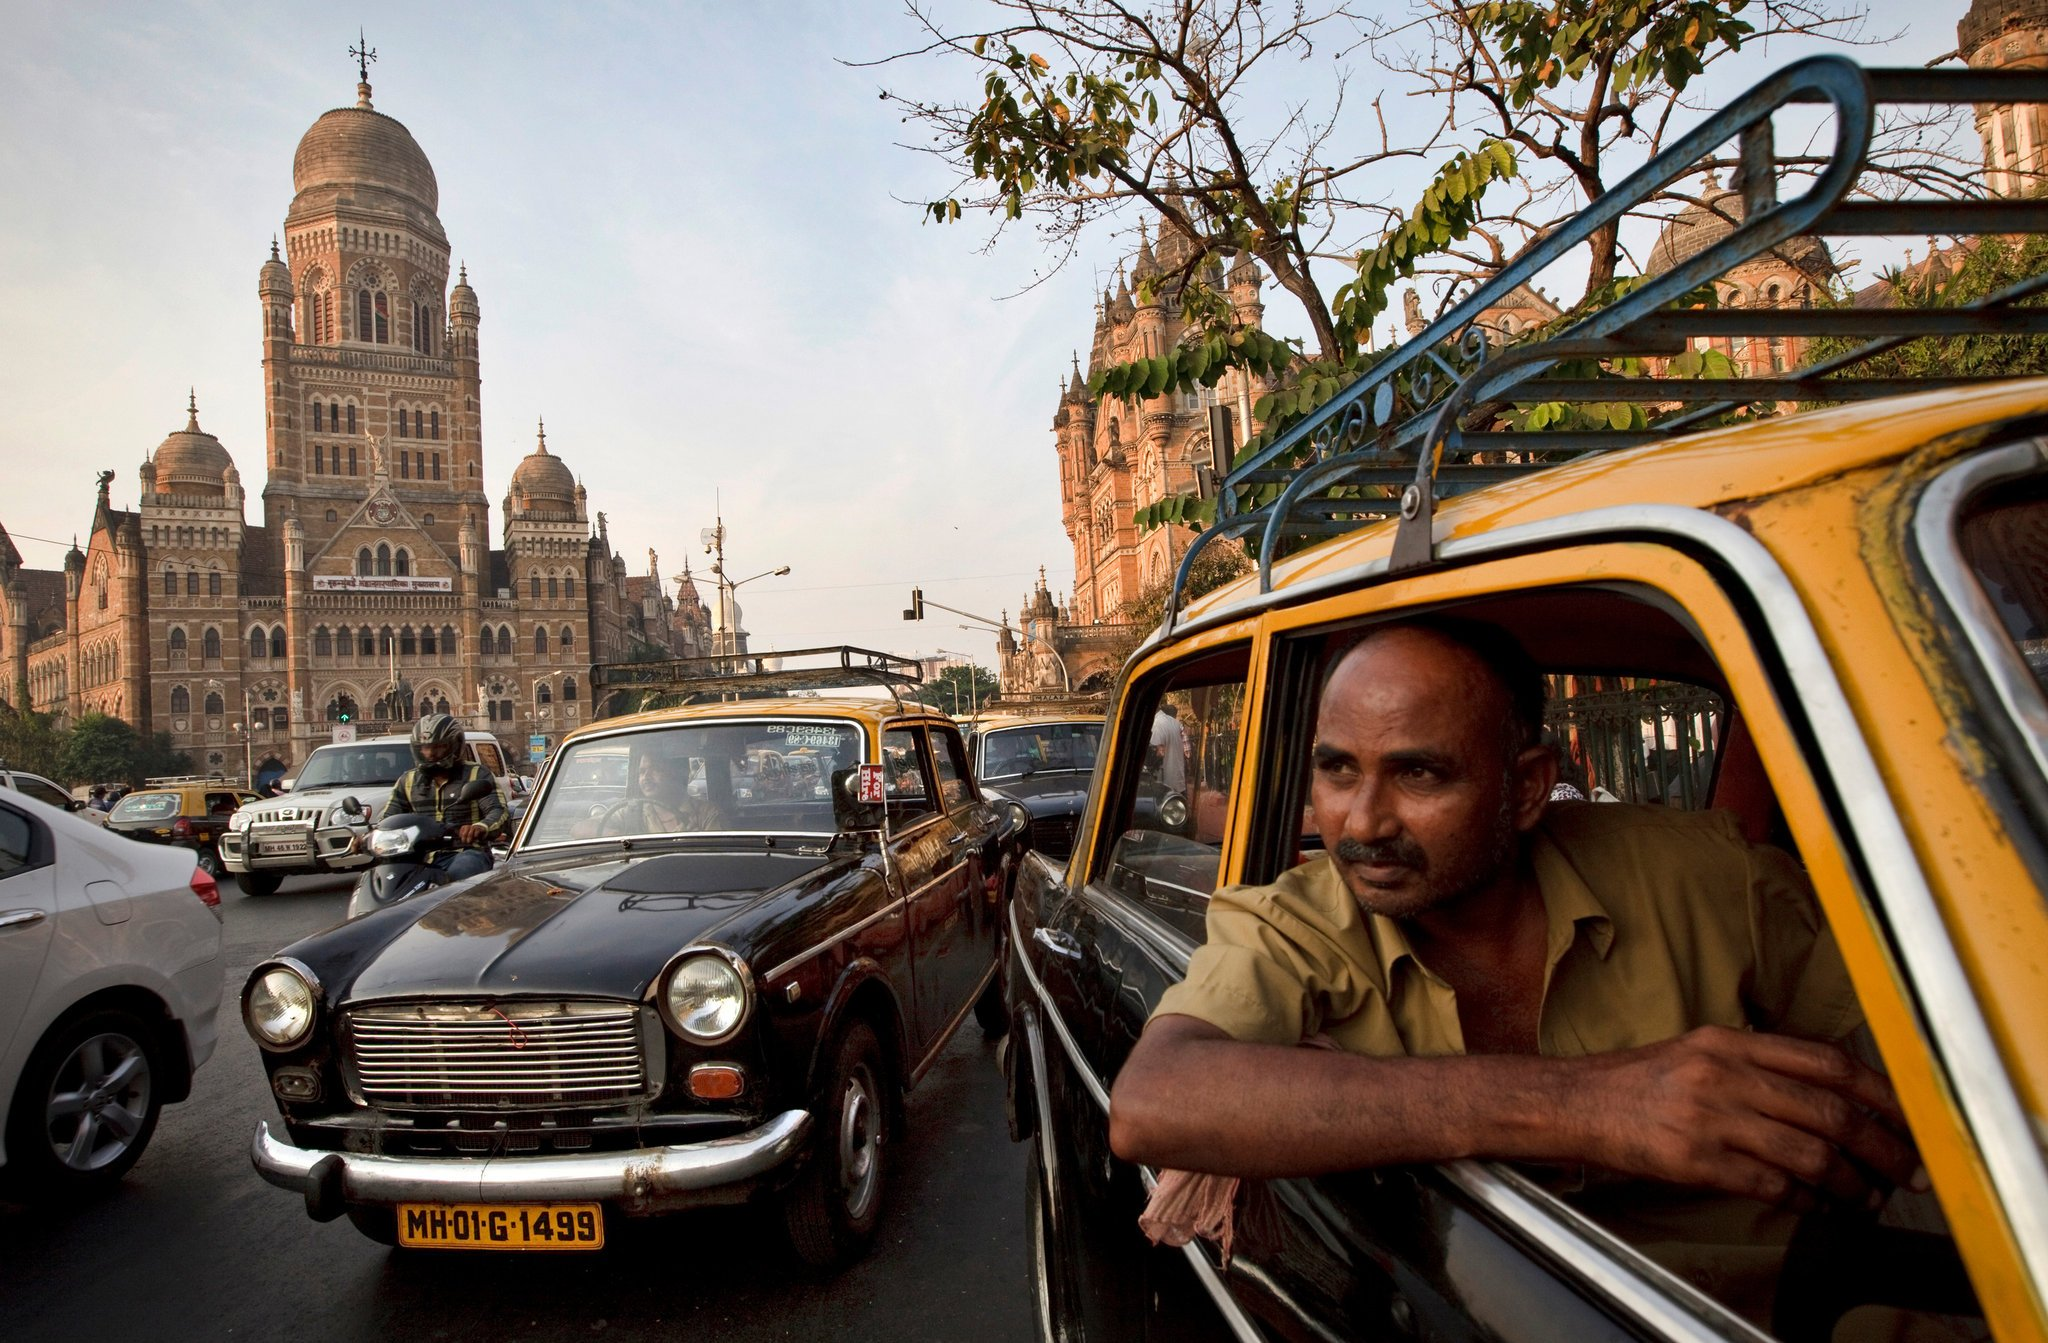 mumbai taxi Credits : Kuni Takahashi for The New York Times